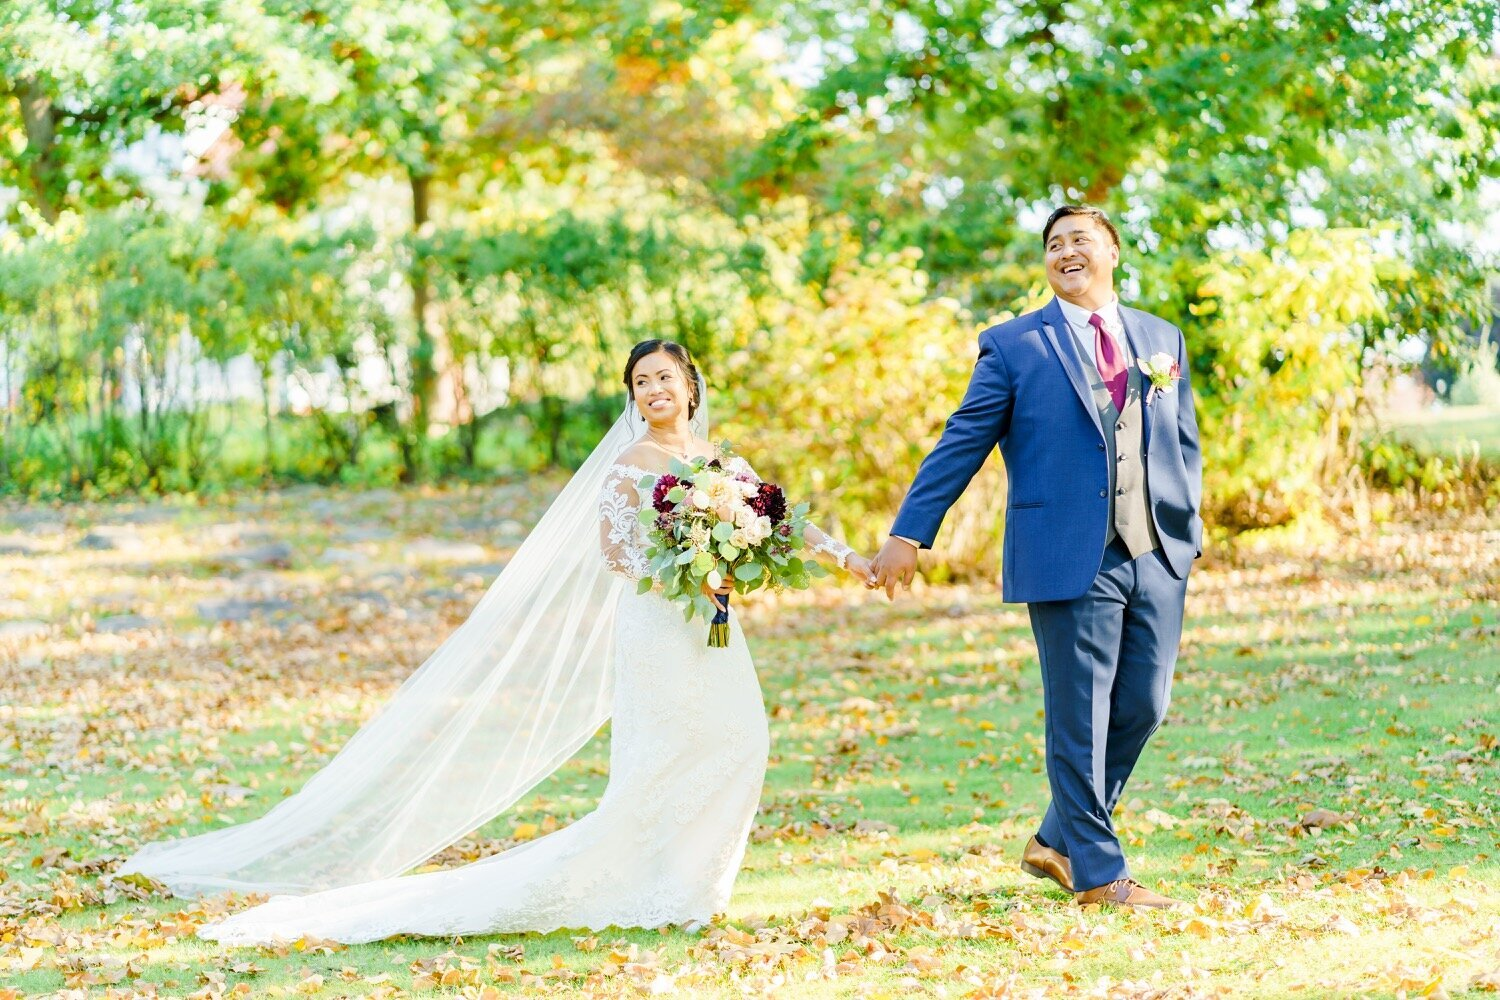 New Hampshire bride and groom holding hands and laughing